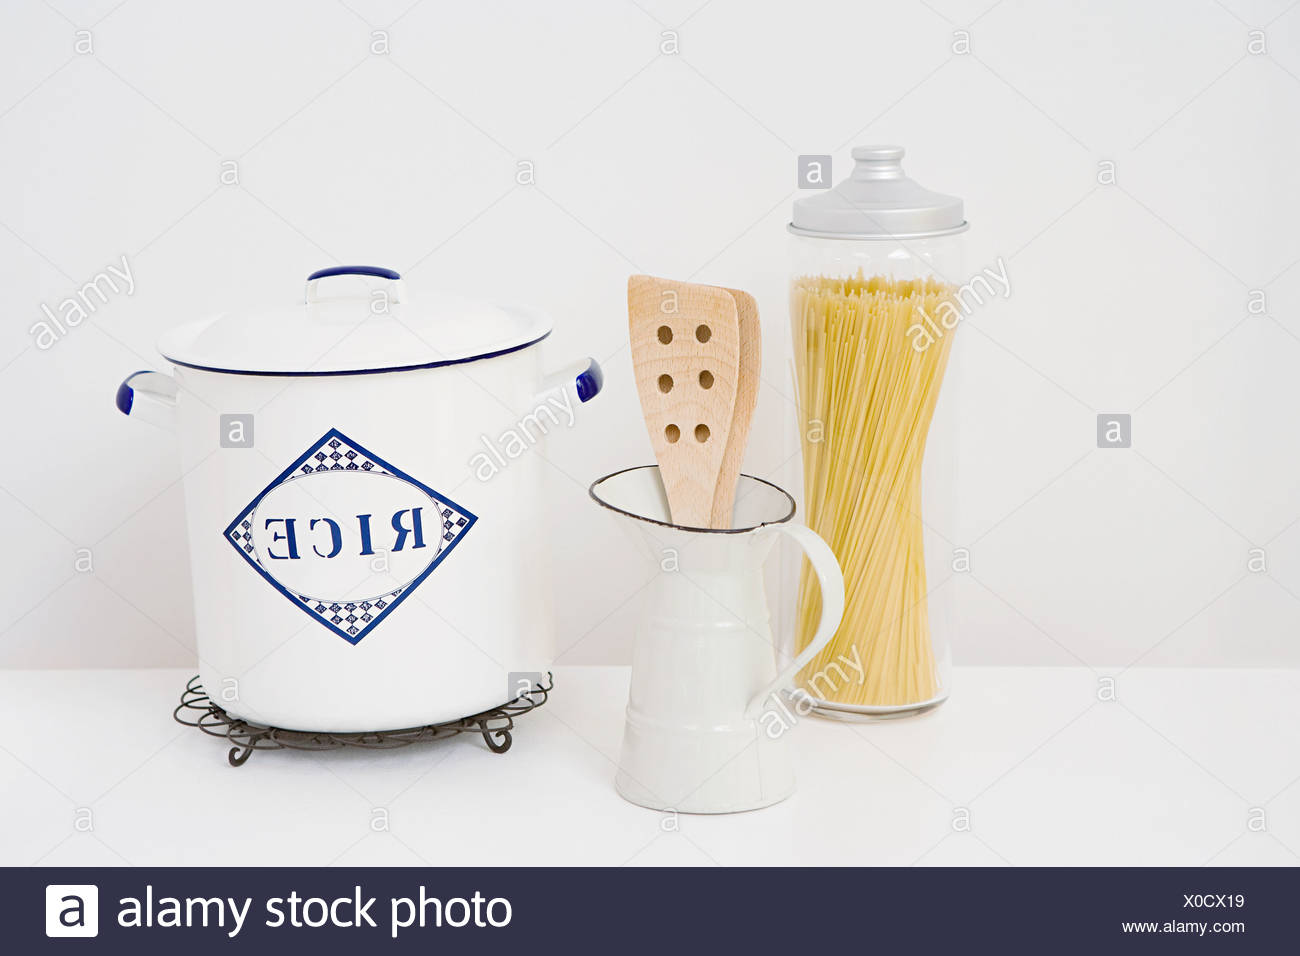 Container of spaghetti and rice - Stock Image